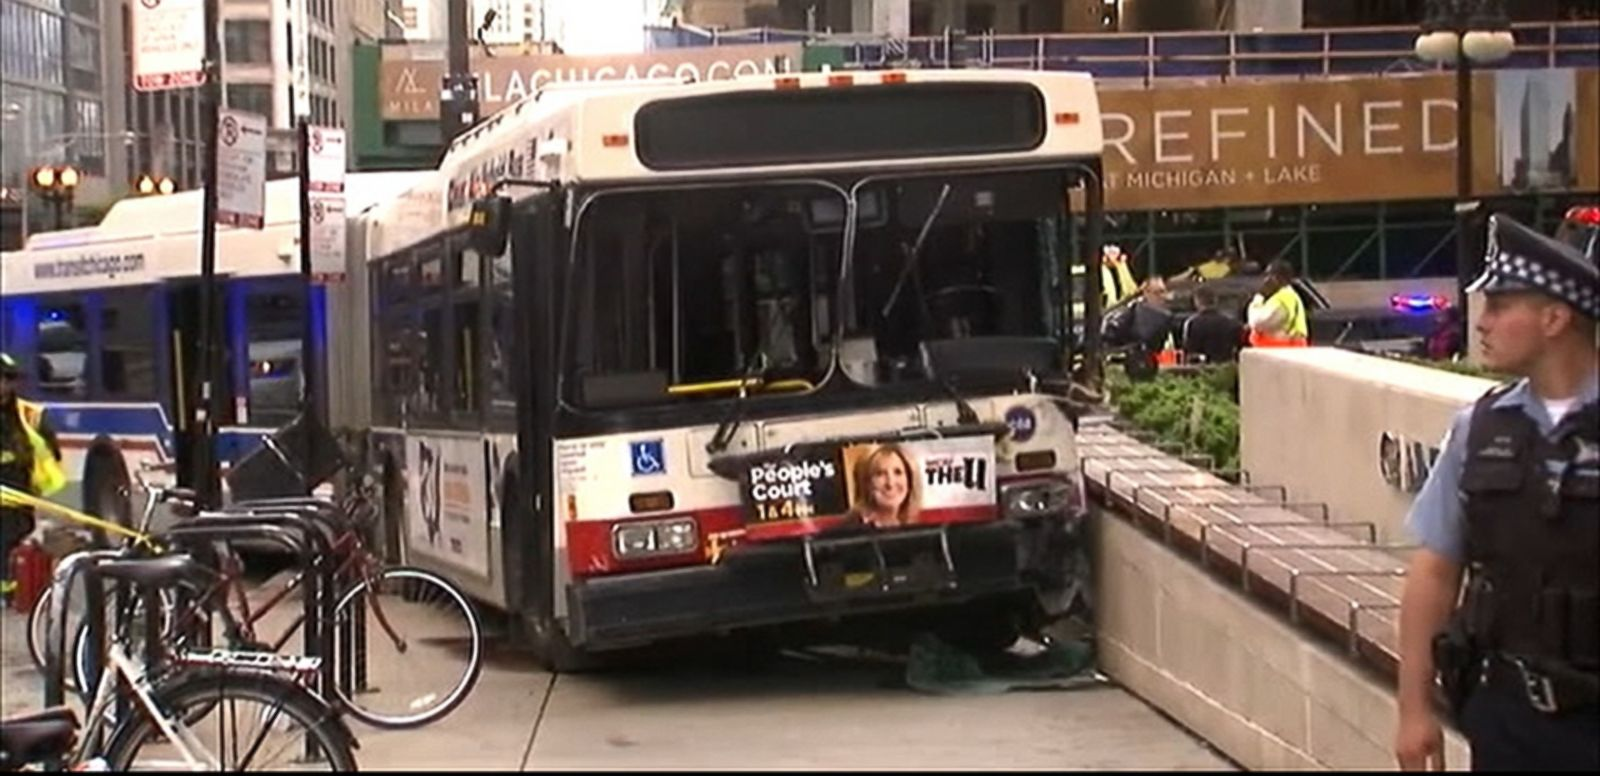 VIDEO: The Chicago Transit Authority bus was turning off a street when it collided with four cars and came to a stop on a pedestrian plaza.